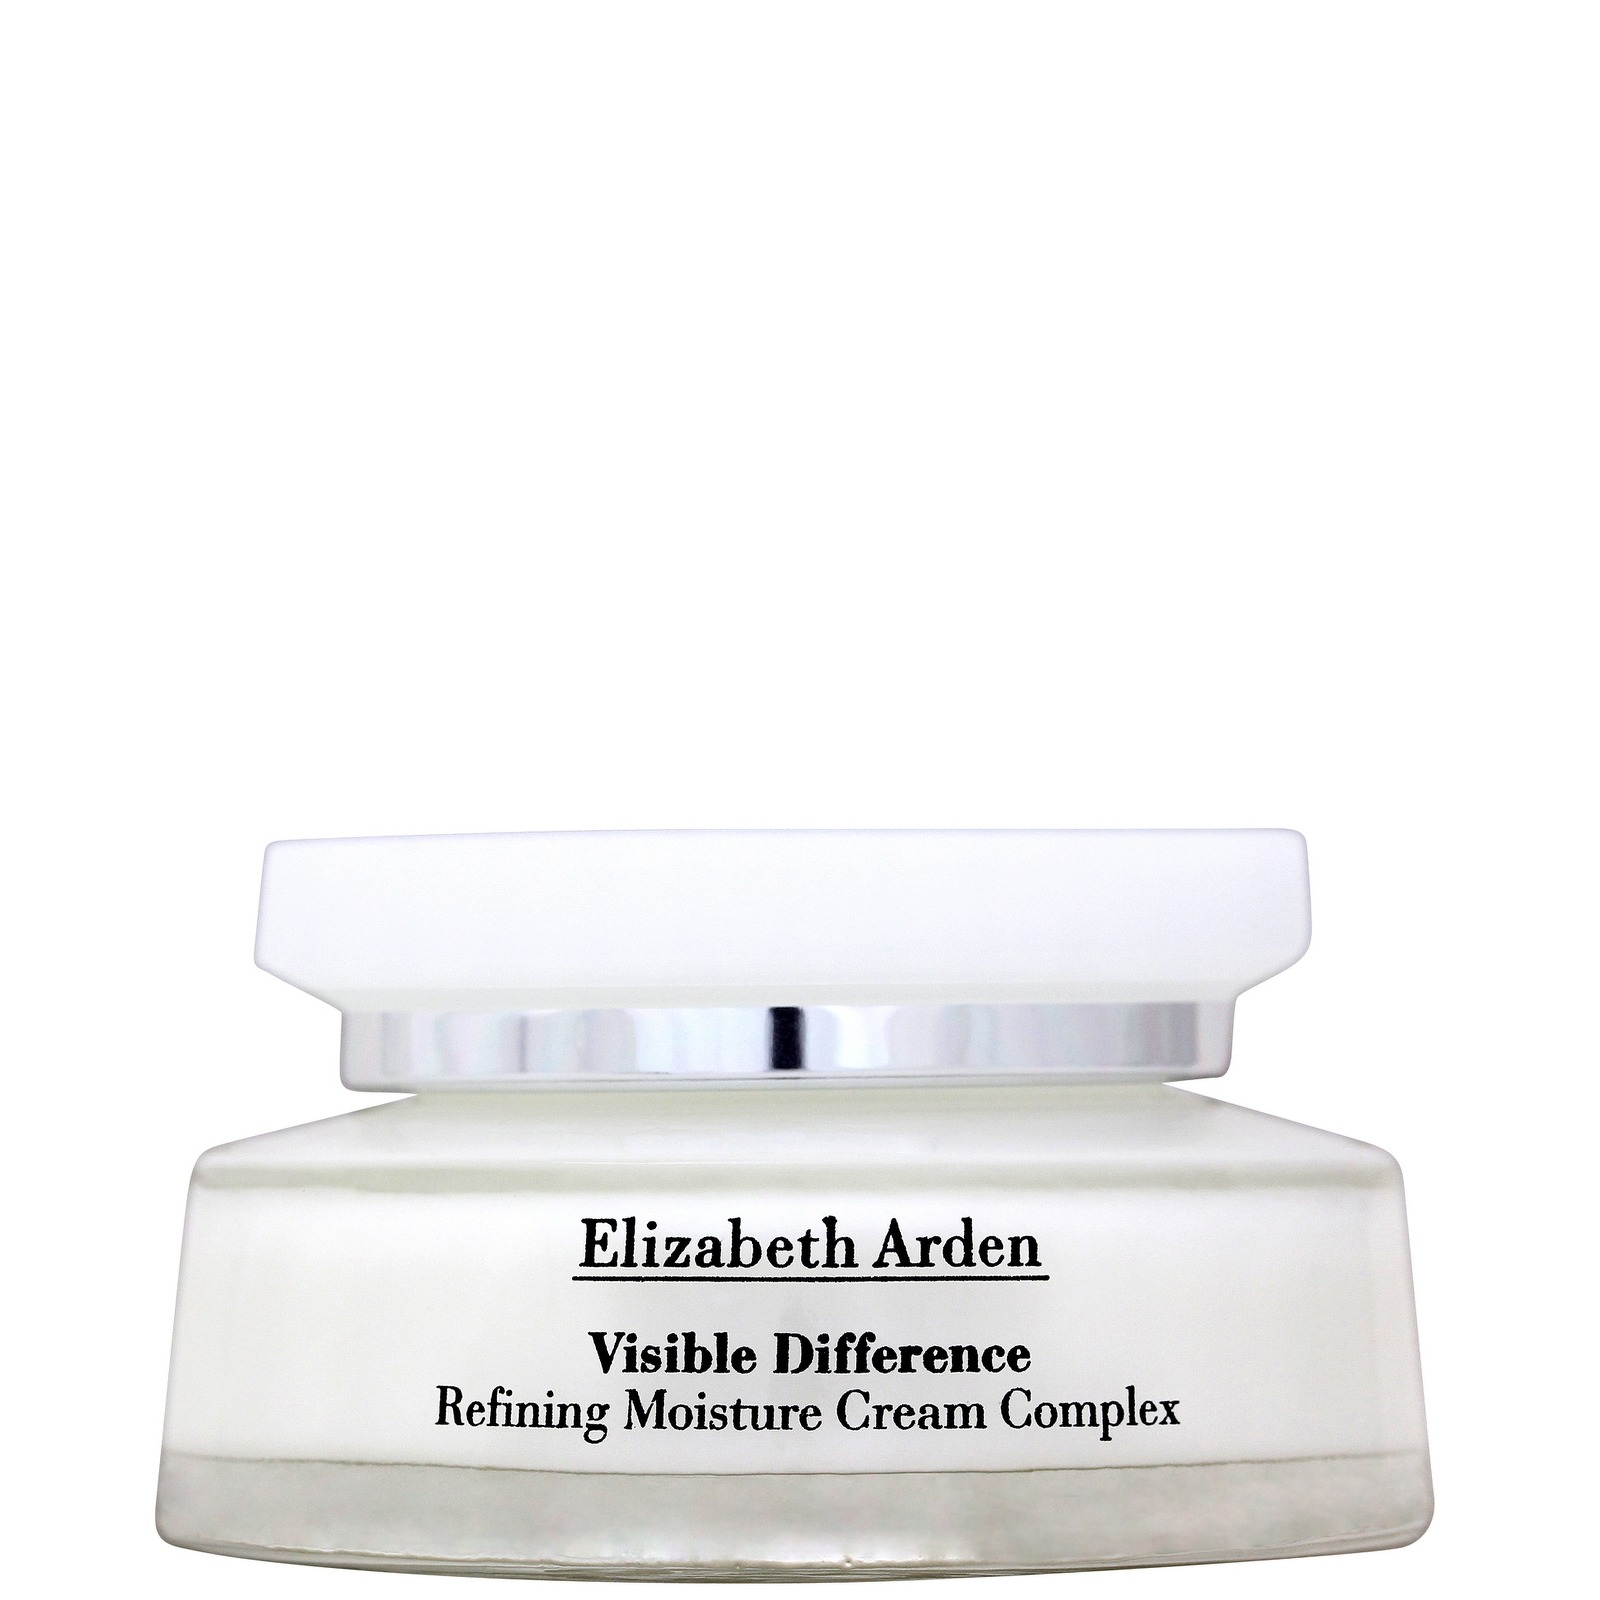 Elizabeth Arden Moisturisers Visible Difference Refining Moisture Cream Complex 75ml / 2.5 fl.oz.